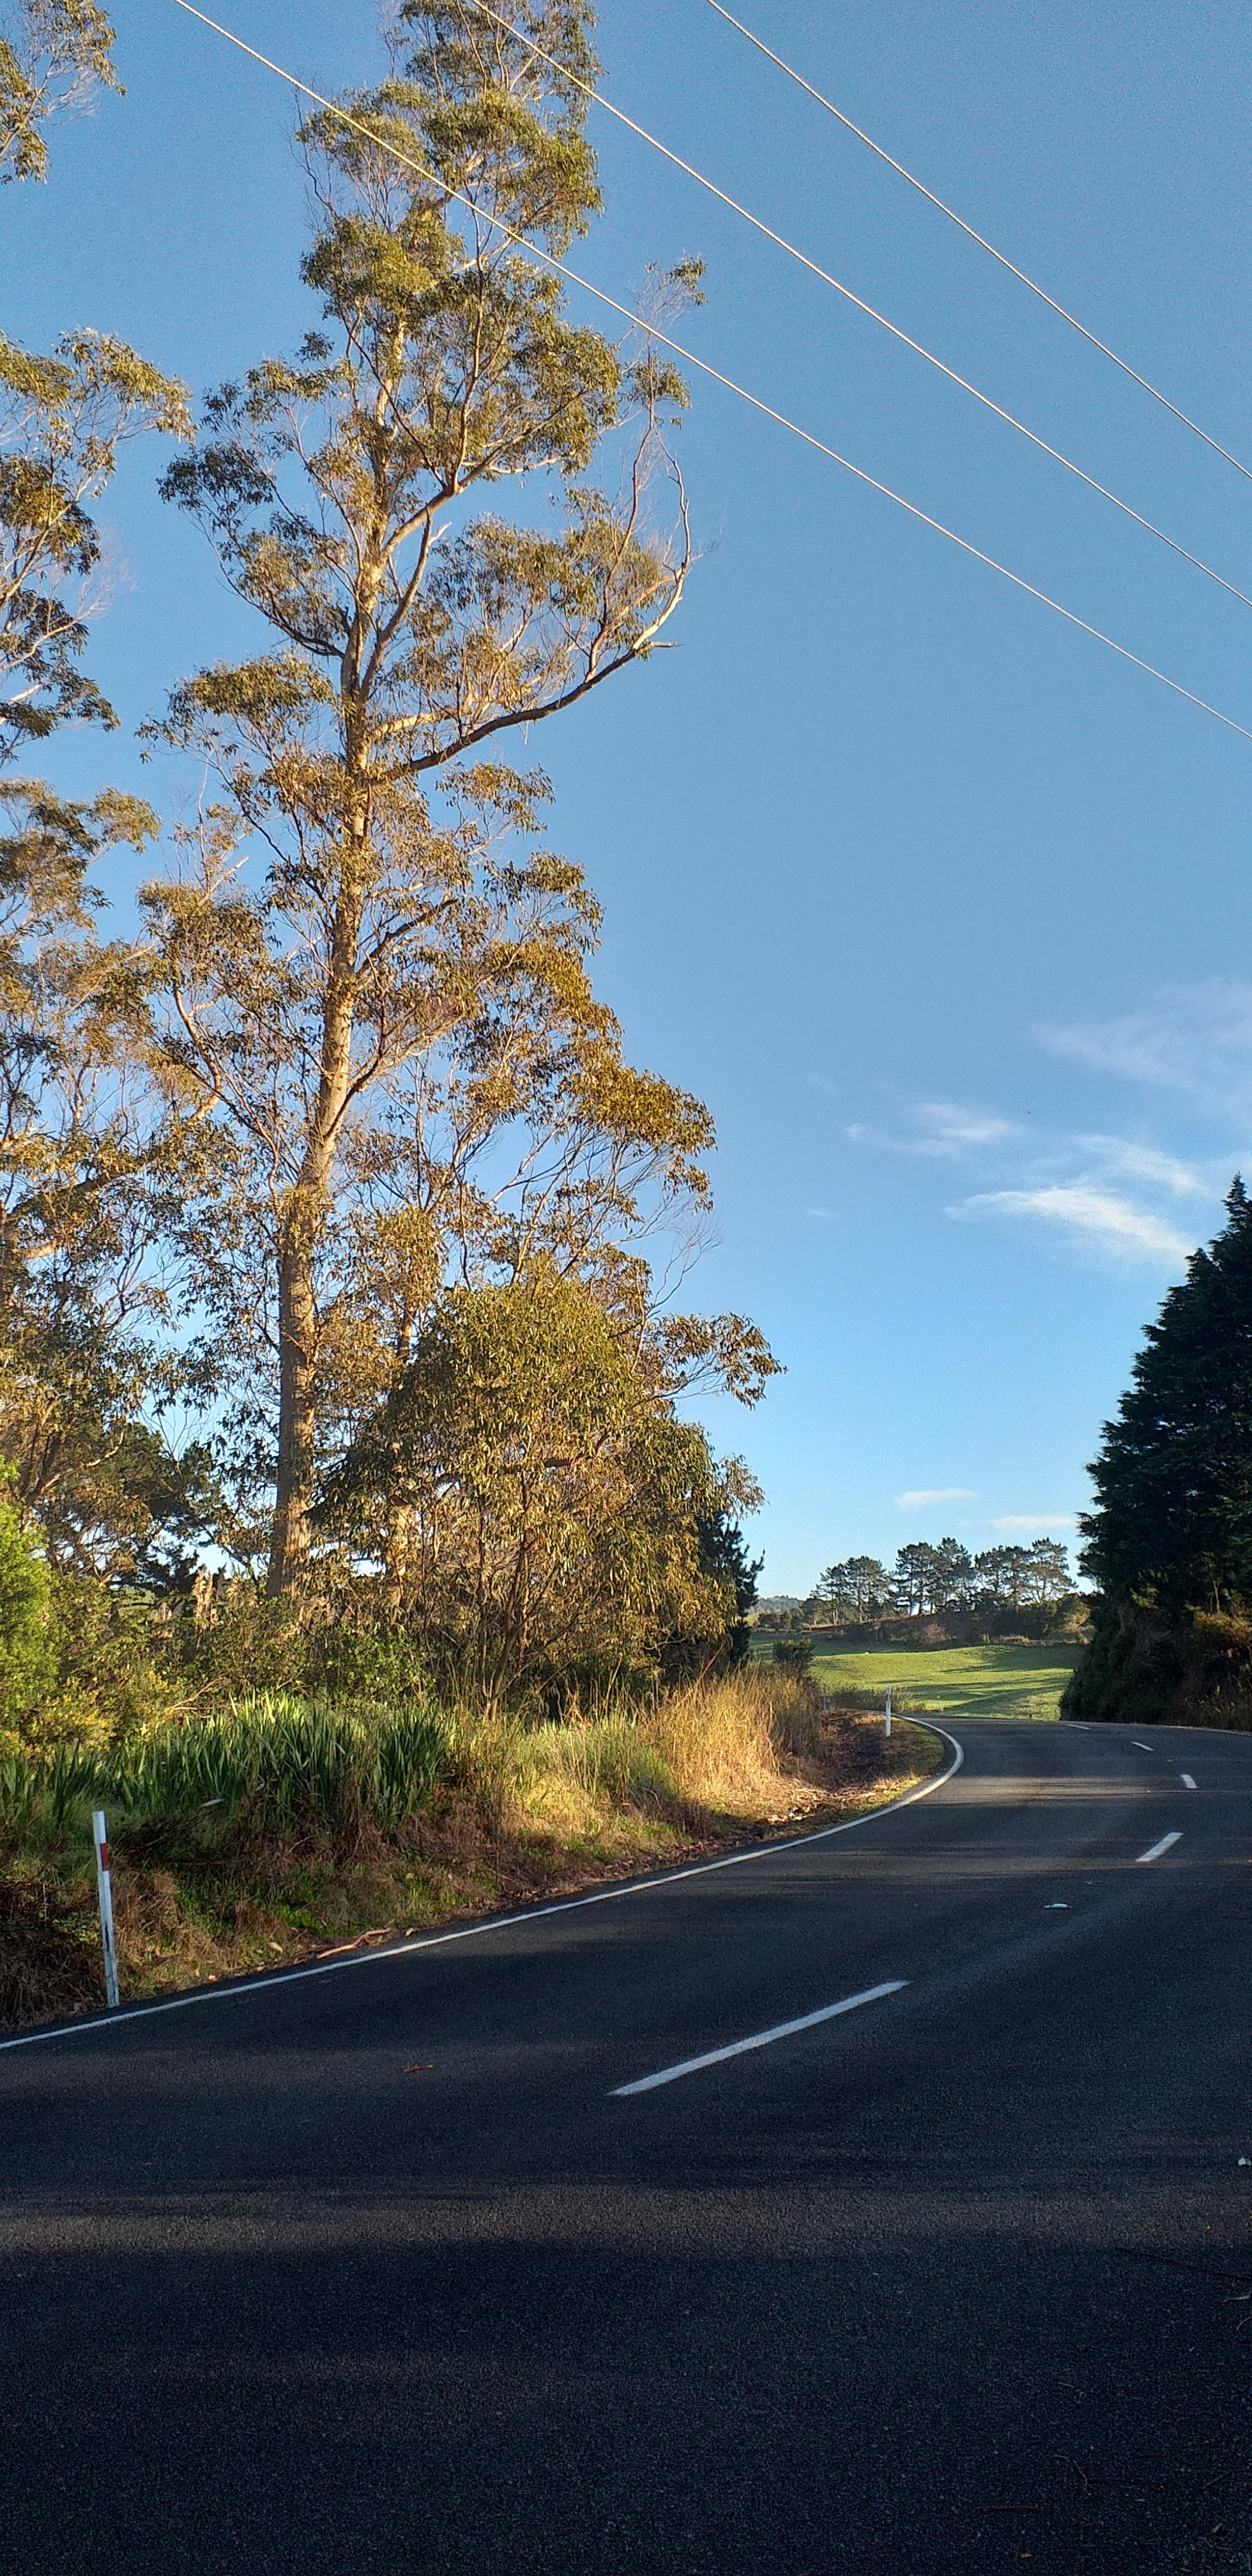 The picture shows the proximity of the trees to the road and the power lines on the other side